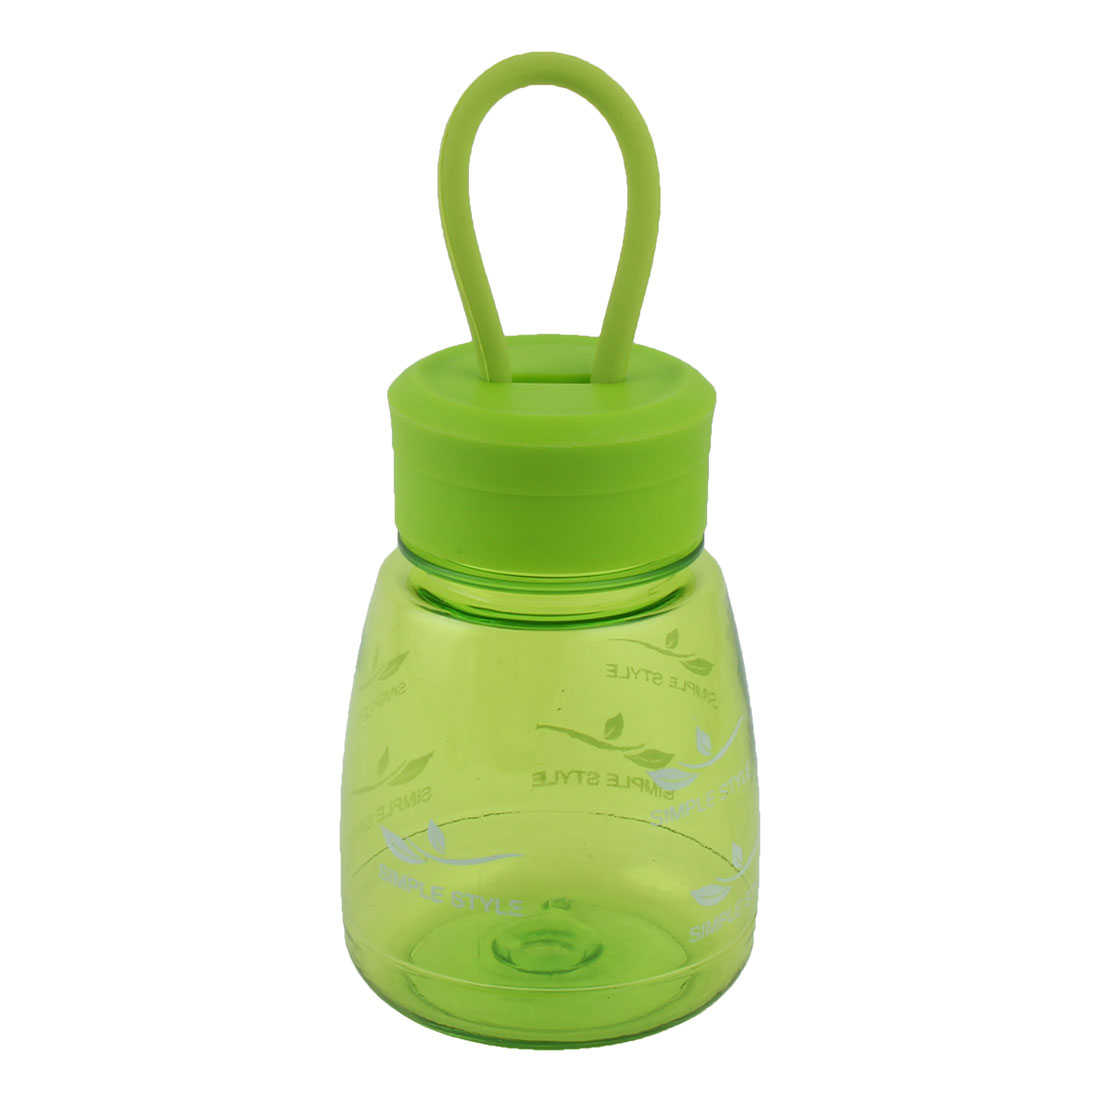 Student Plastic Letter Pattern Portable Tea Cup Water Bottle Sports Mug Green 330ml